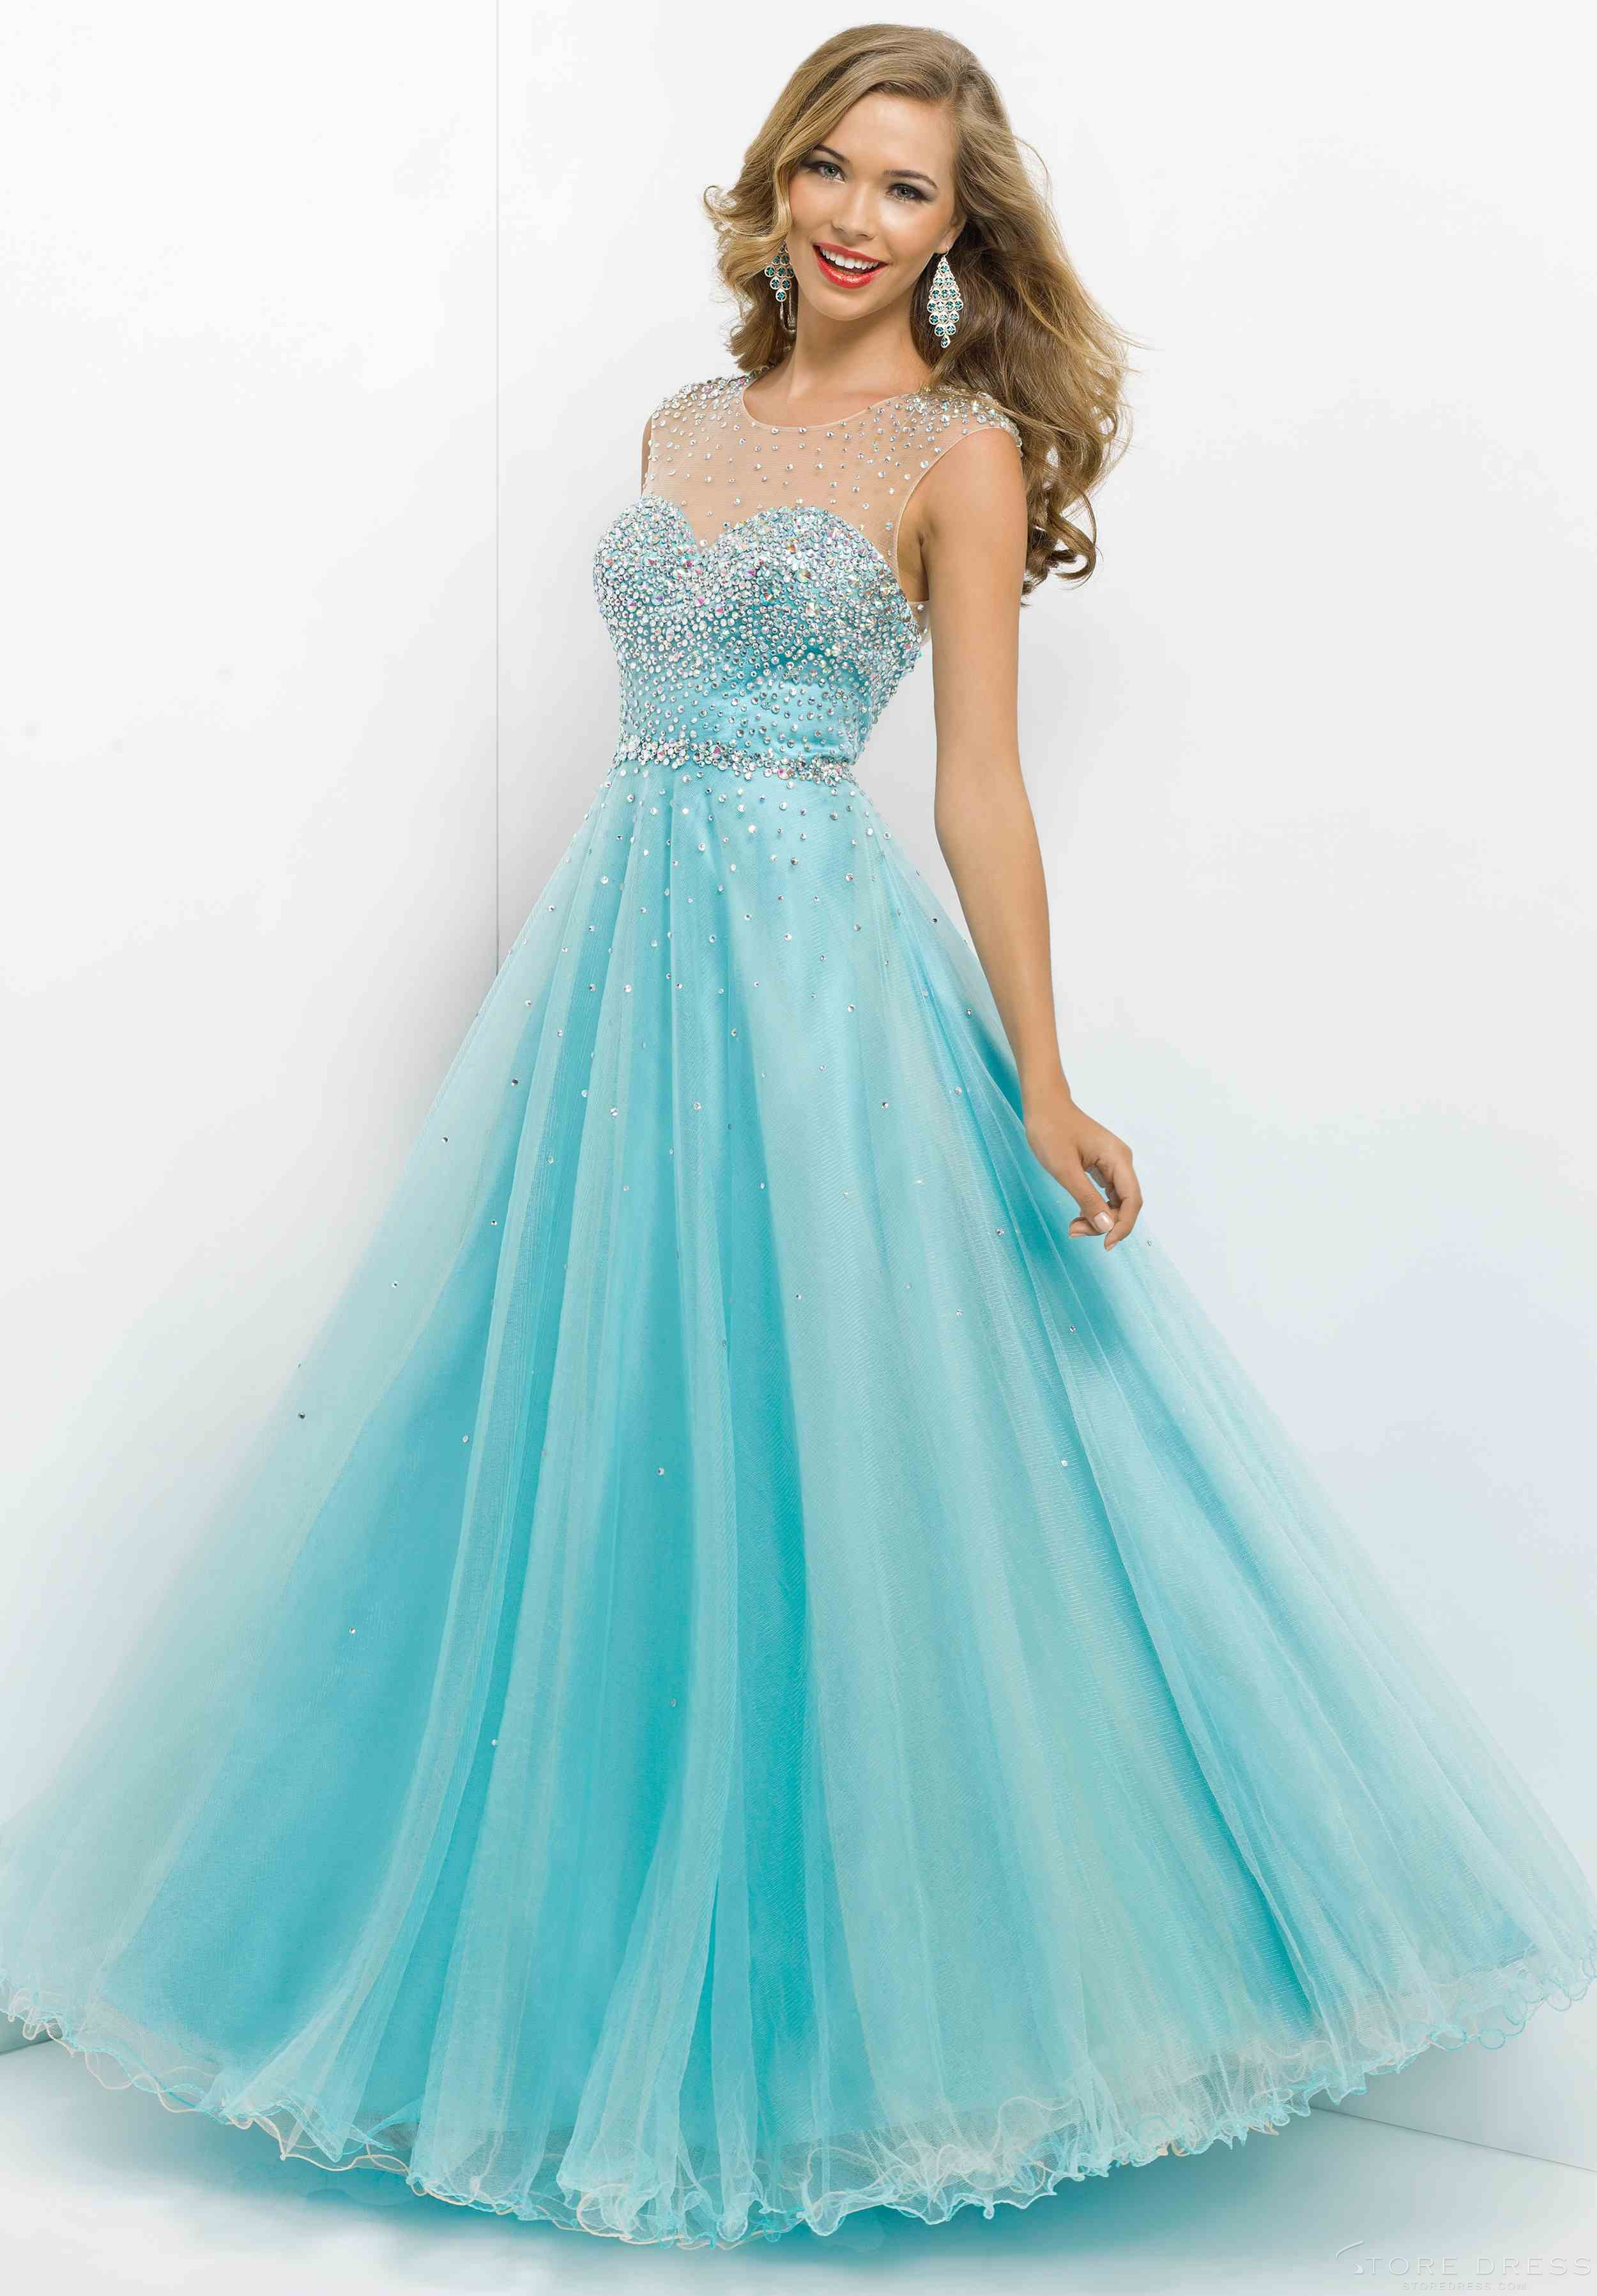 Prom Dress Wallpaper